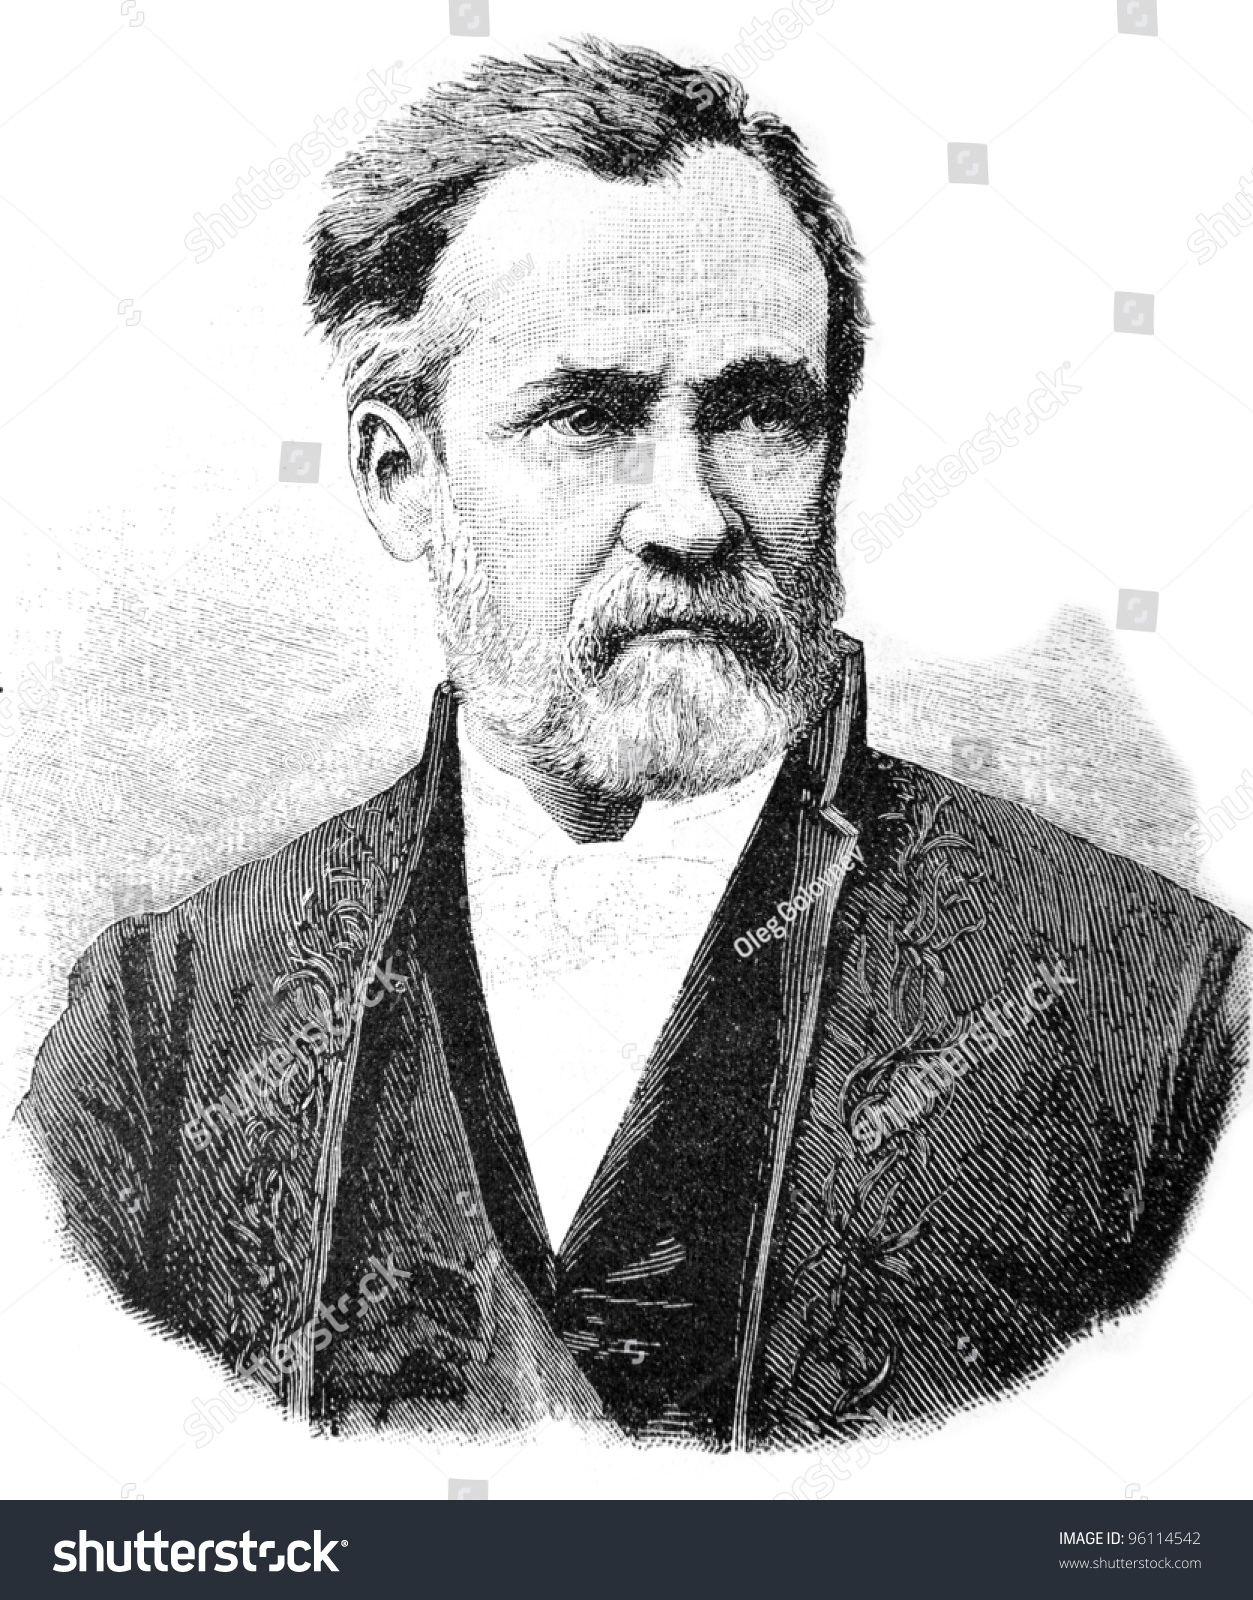 a biography of louis pasteur a french microbiologist Louis pasteur (en) is credited as chemist, and microbiologist,  louis pasteur was a french chemist and microbiologist, after whom the process of pasteurization has been named.